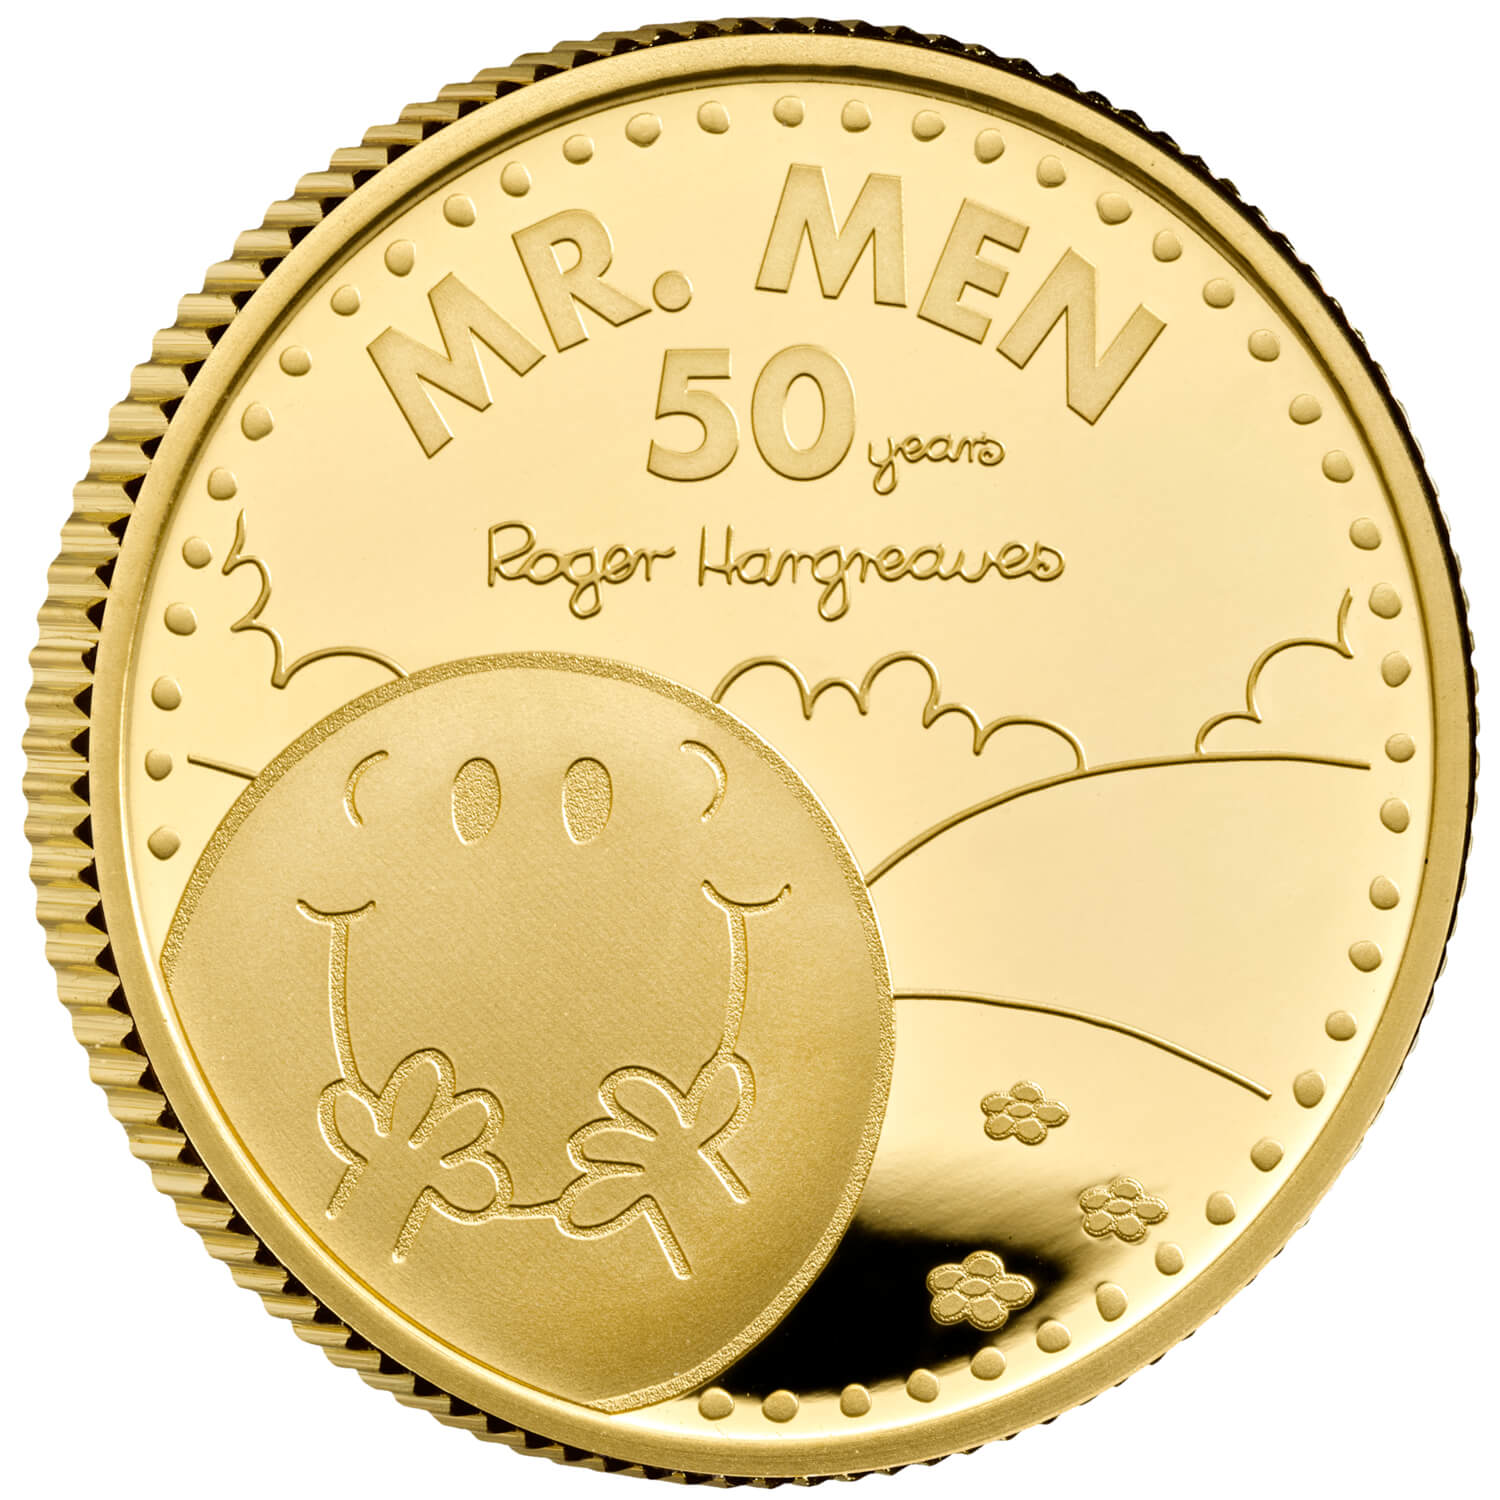 mr-men-quarter-ounce-gold-proof-coin